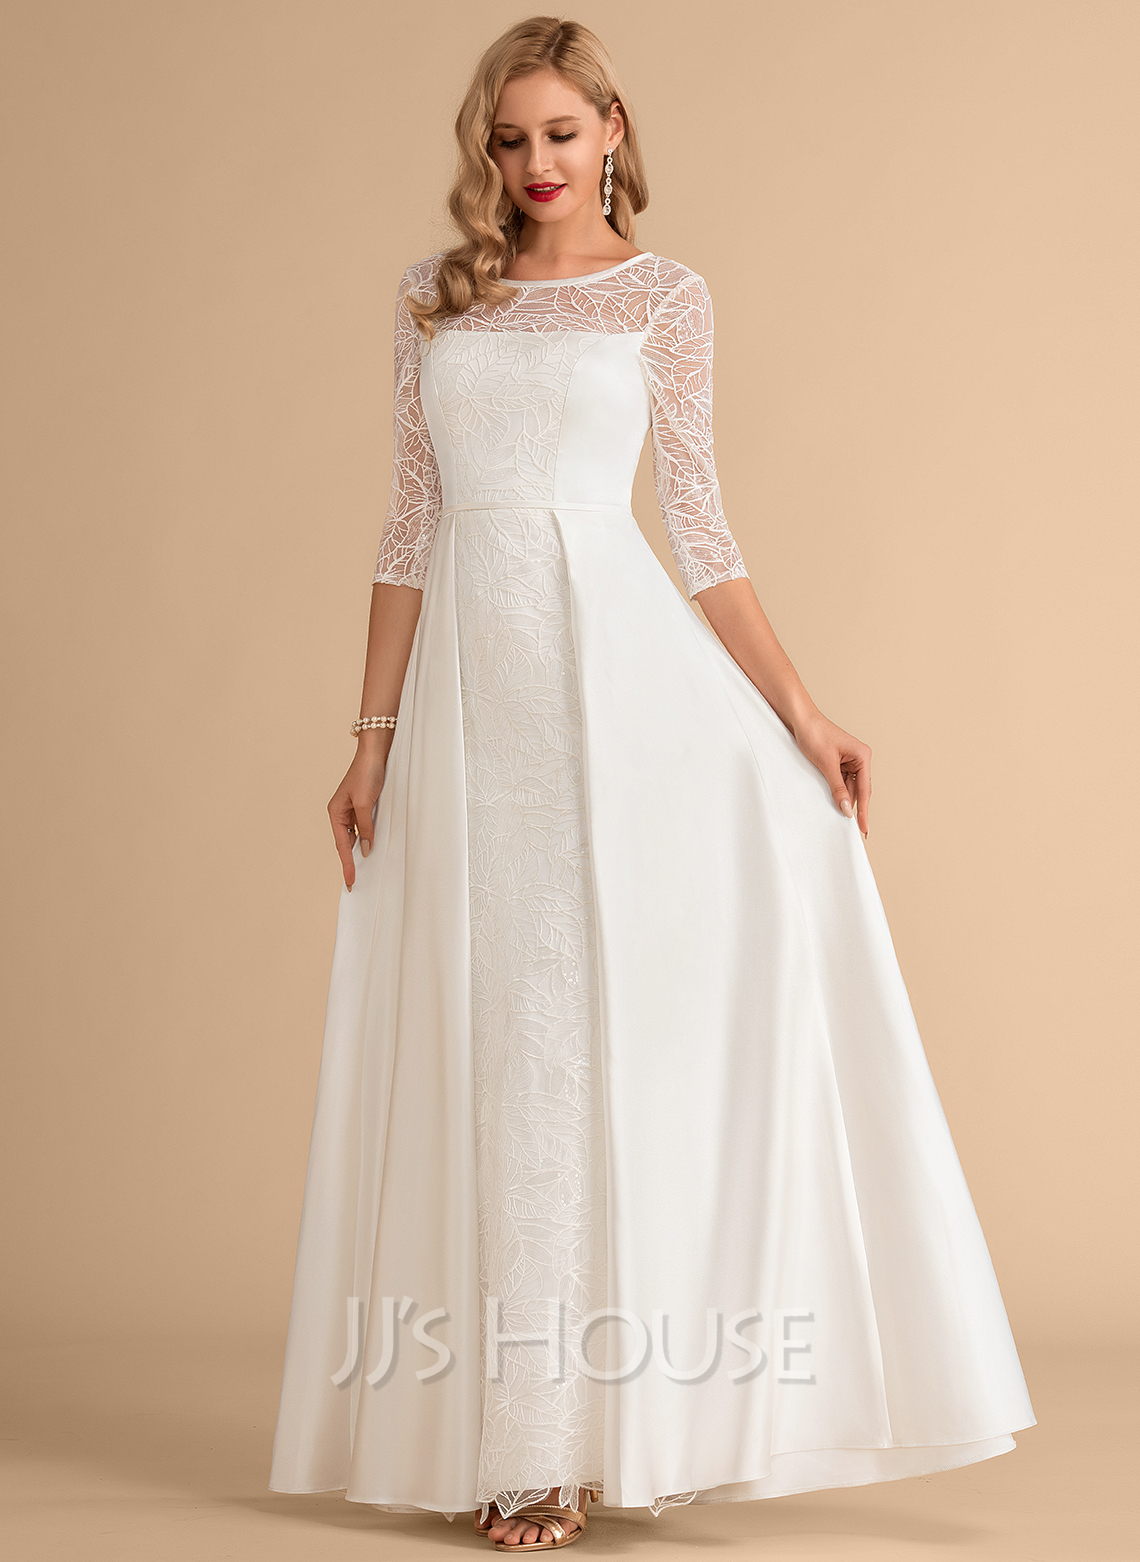 Scoop Neck Floor-Length Satin Wedding Dress With Lace